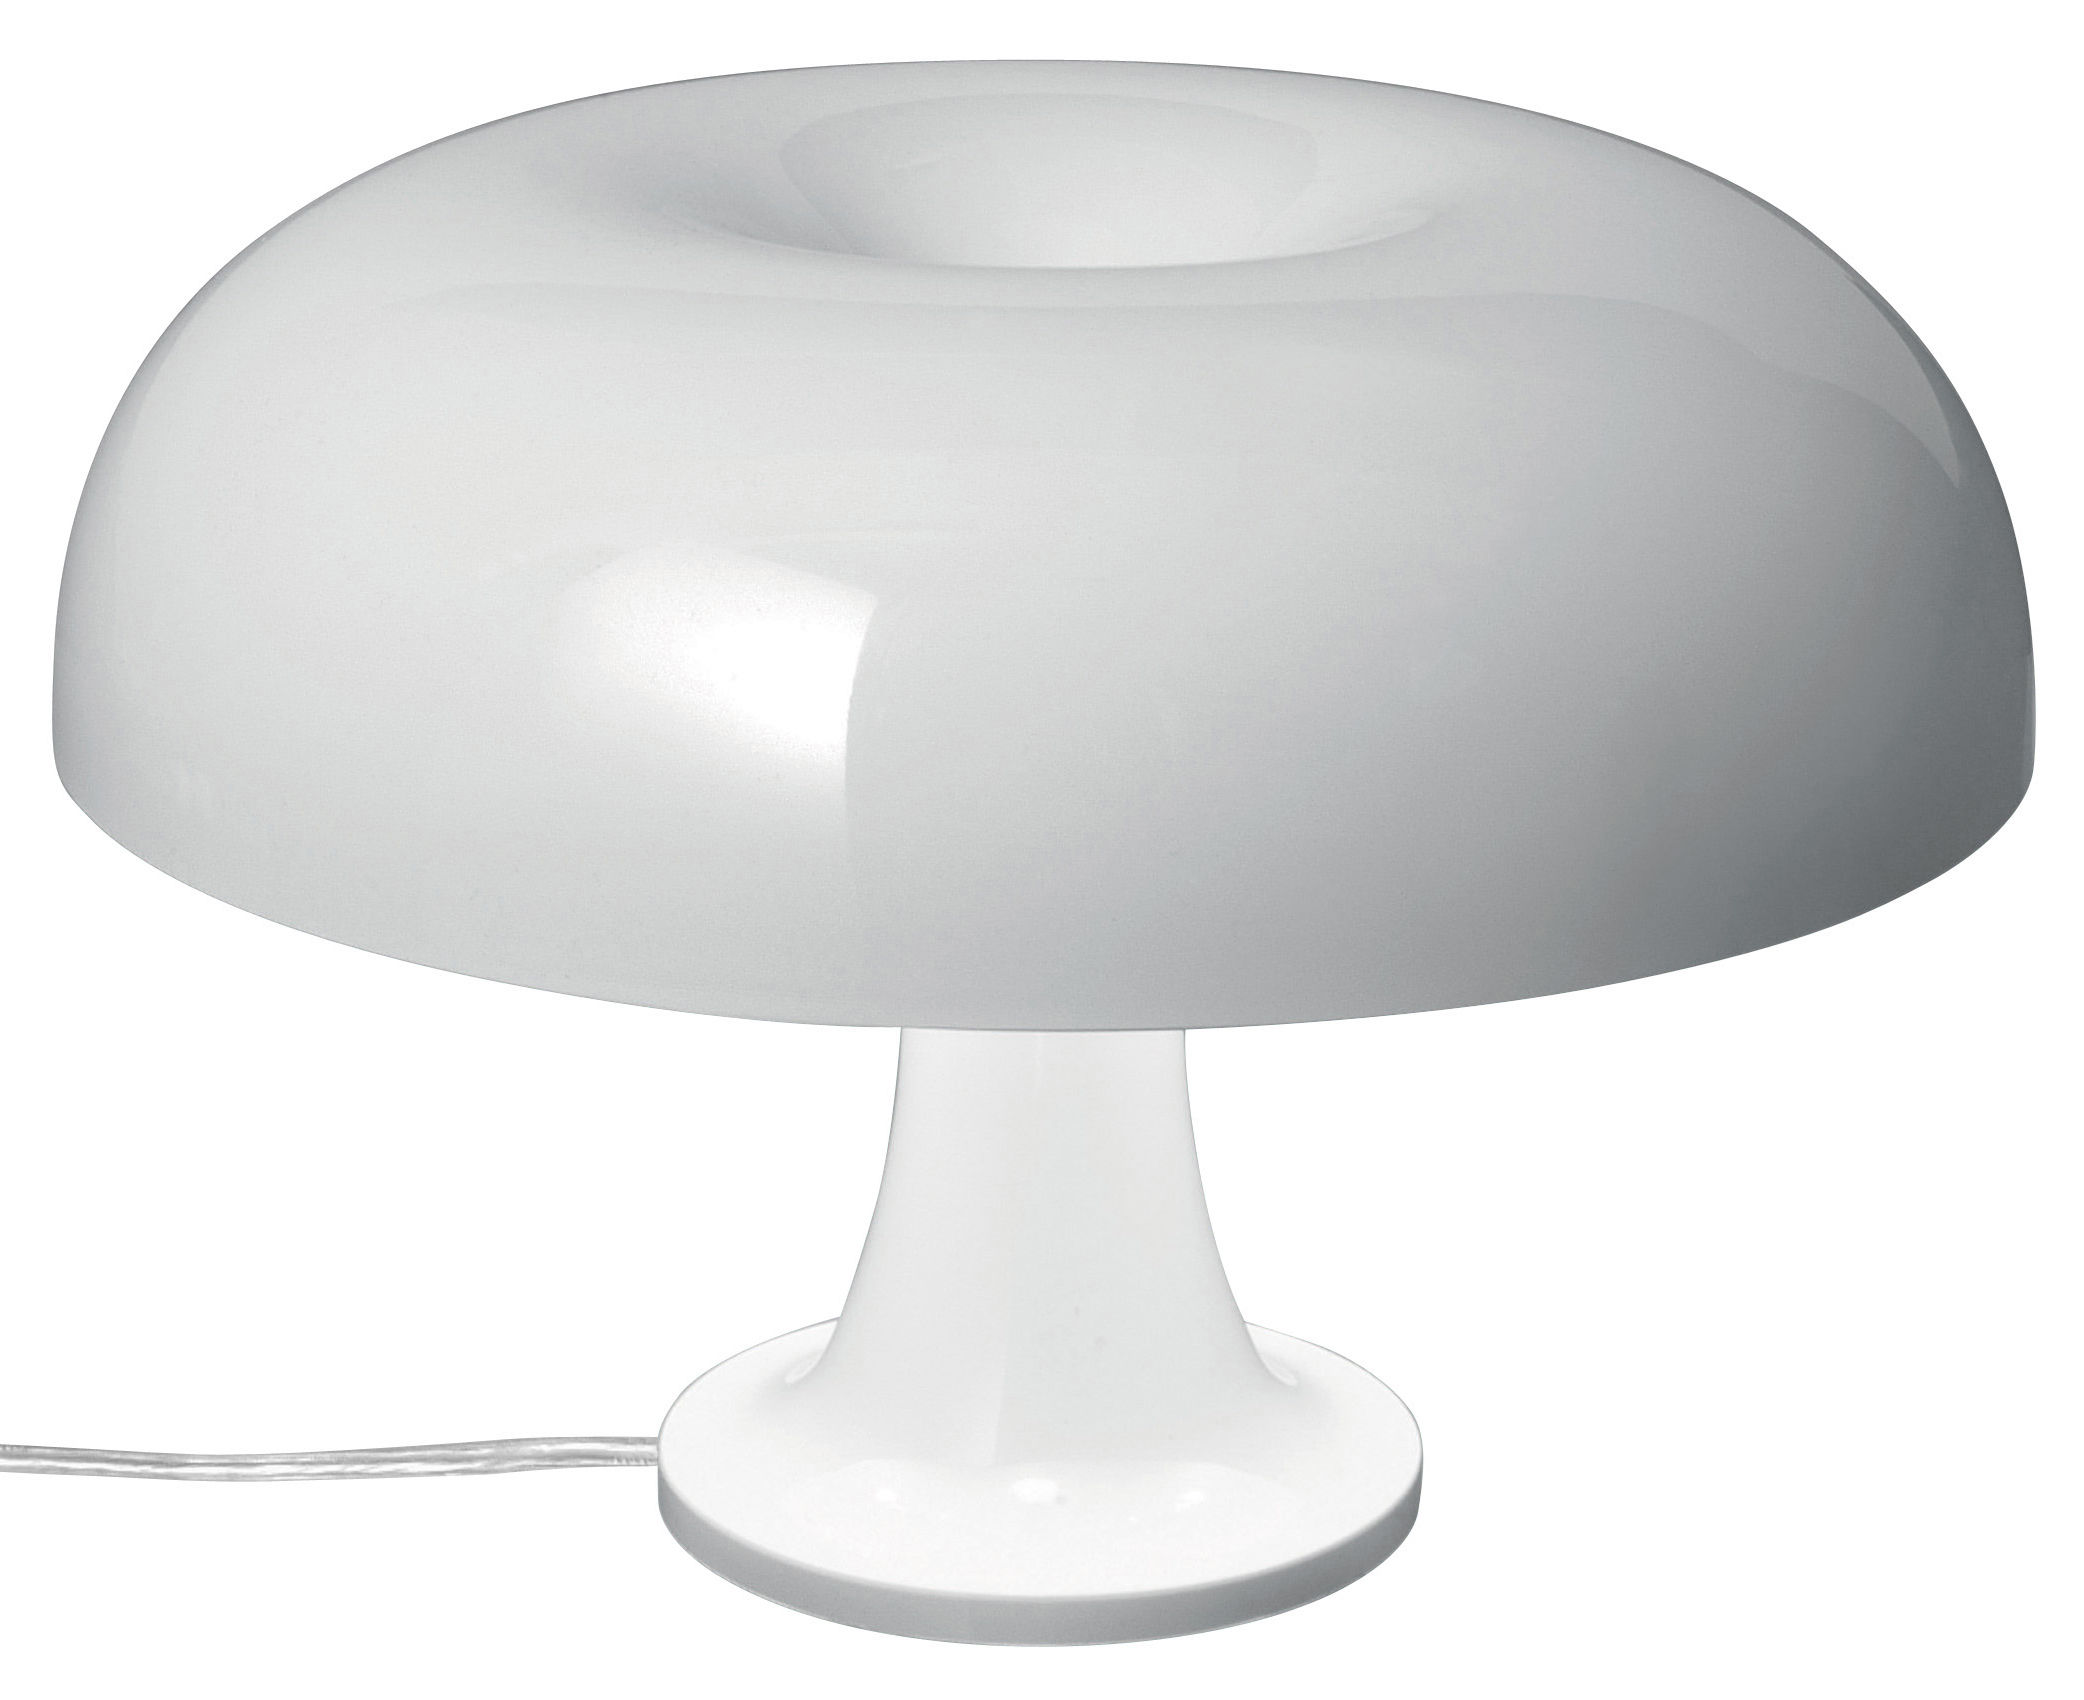 Lighting - Table Lamps - Nessino Table lamp by Artemide - Solid white - Polycarbonate